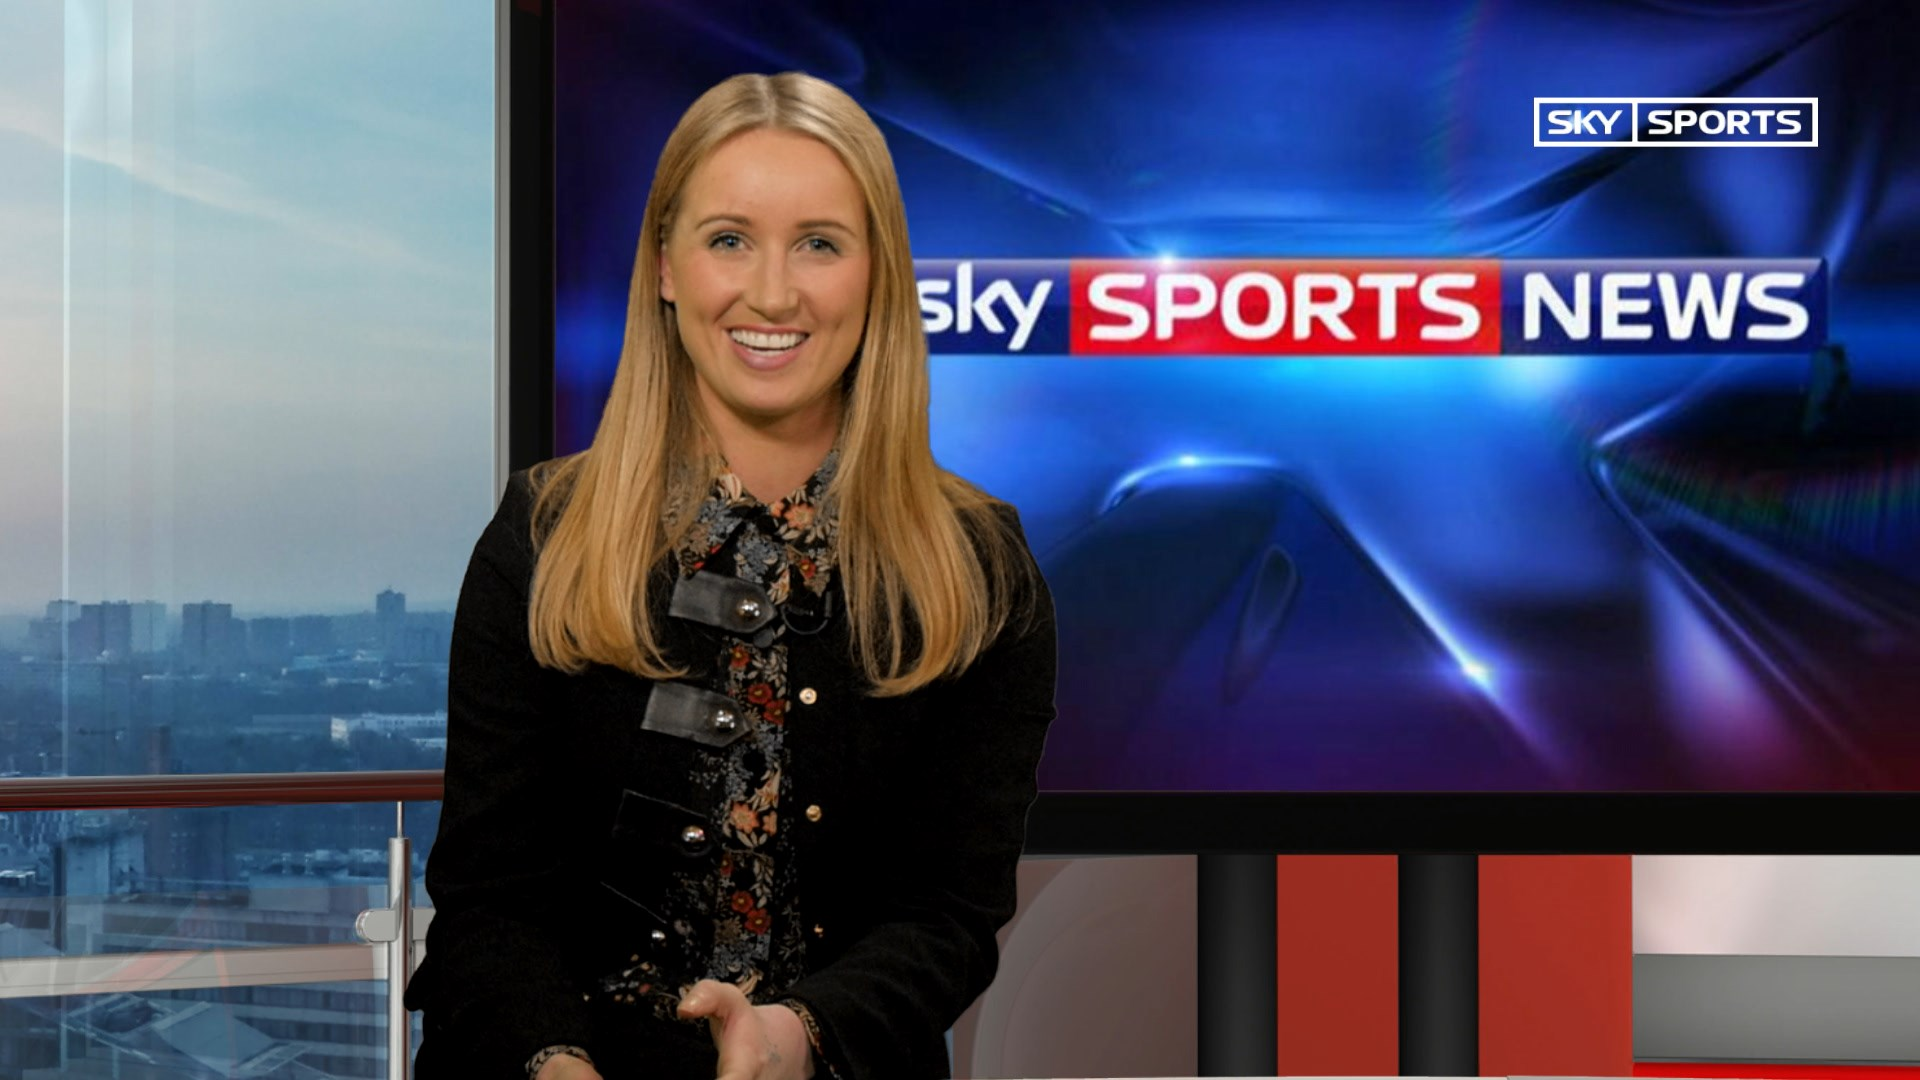 Live screen grab featuring live virtual set in simulated sport news style at Pozitiv's TV studio, London, UK